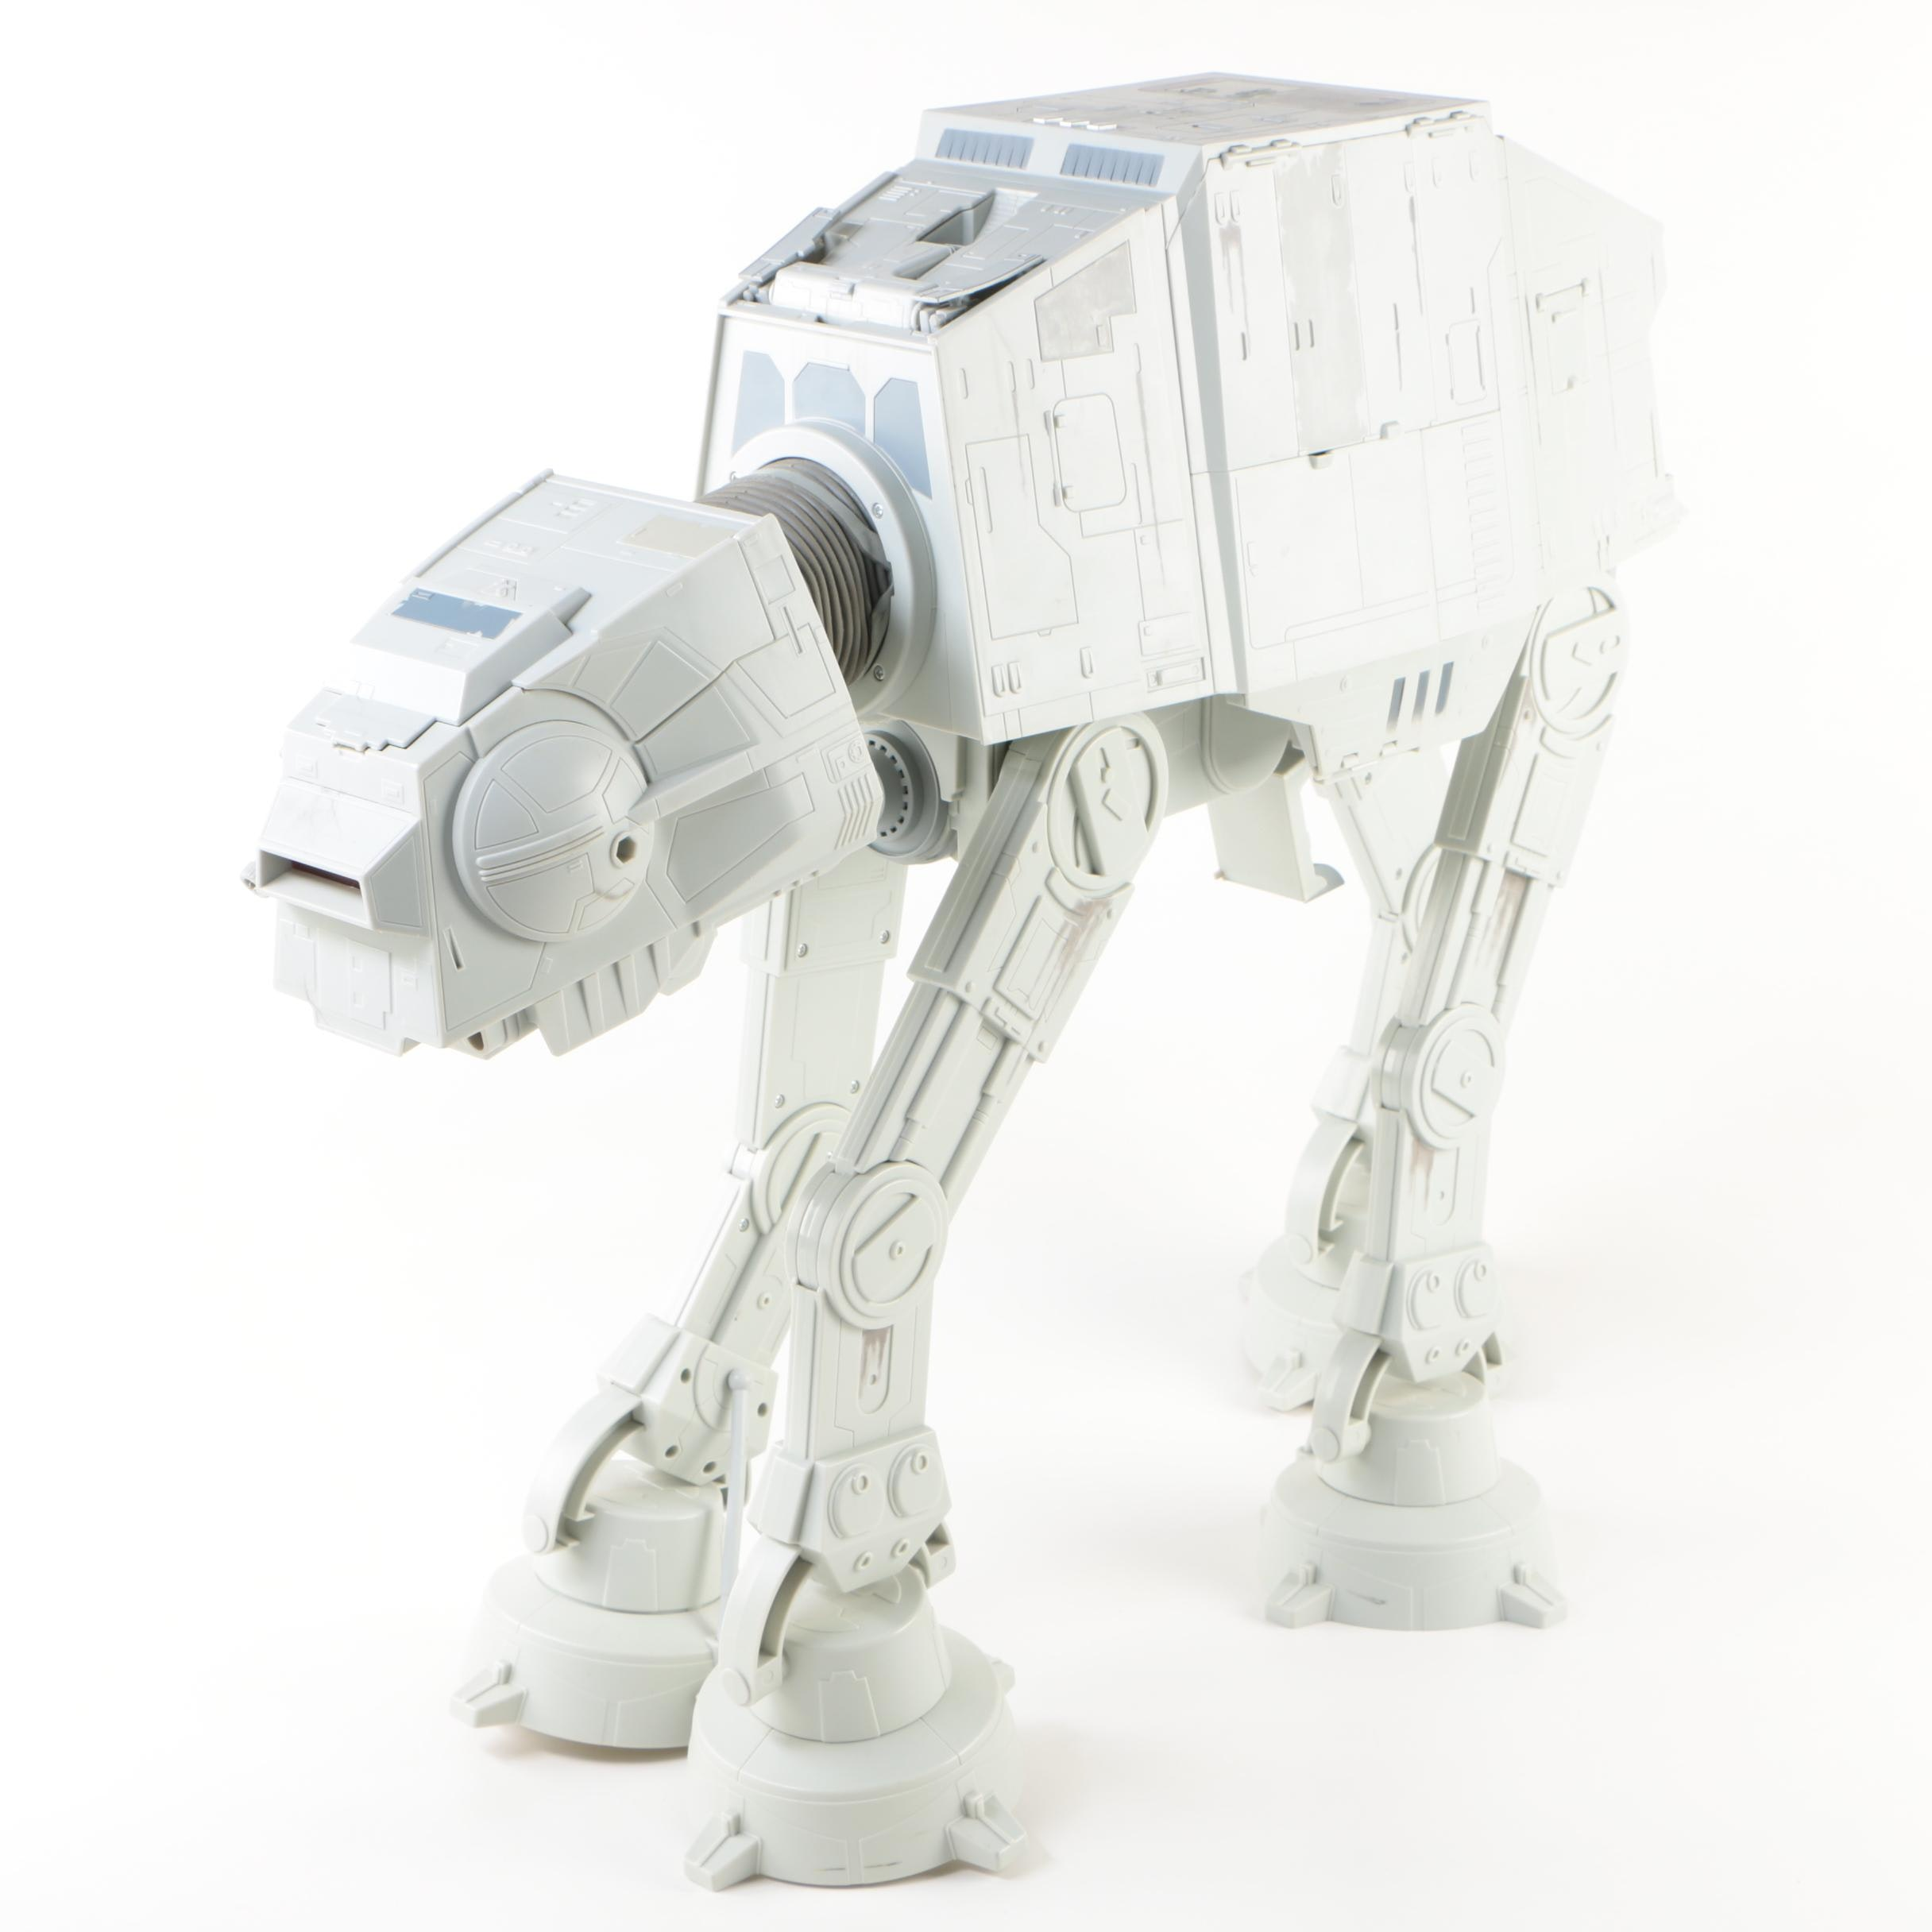 """Star Wars"" AT-AT Walker by Hasbro"